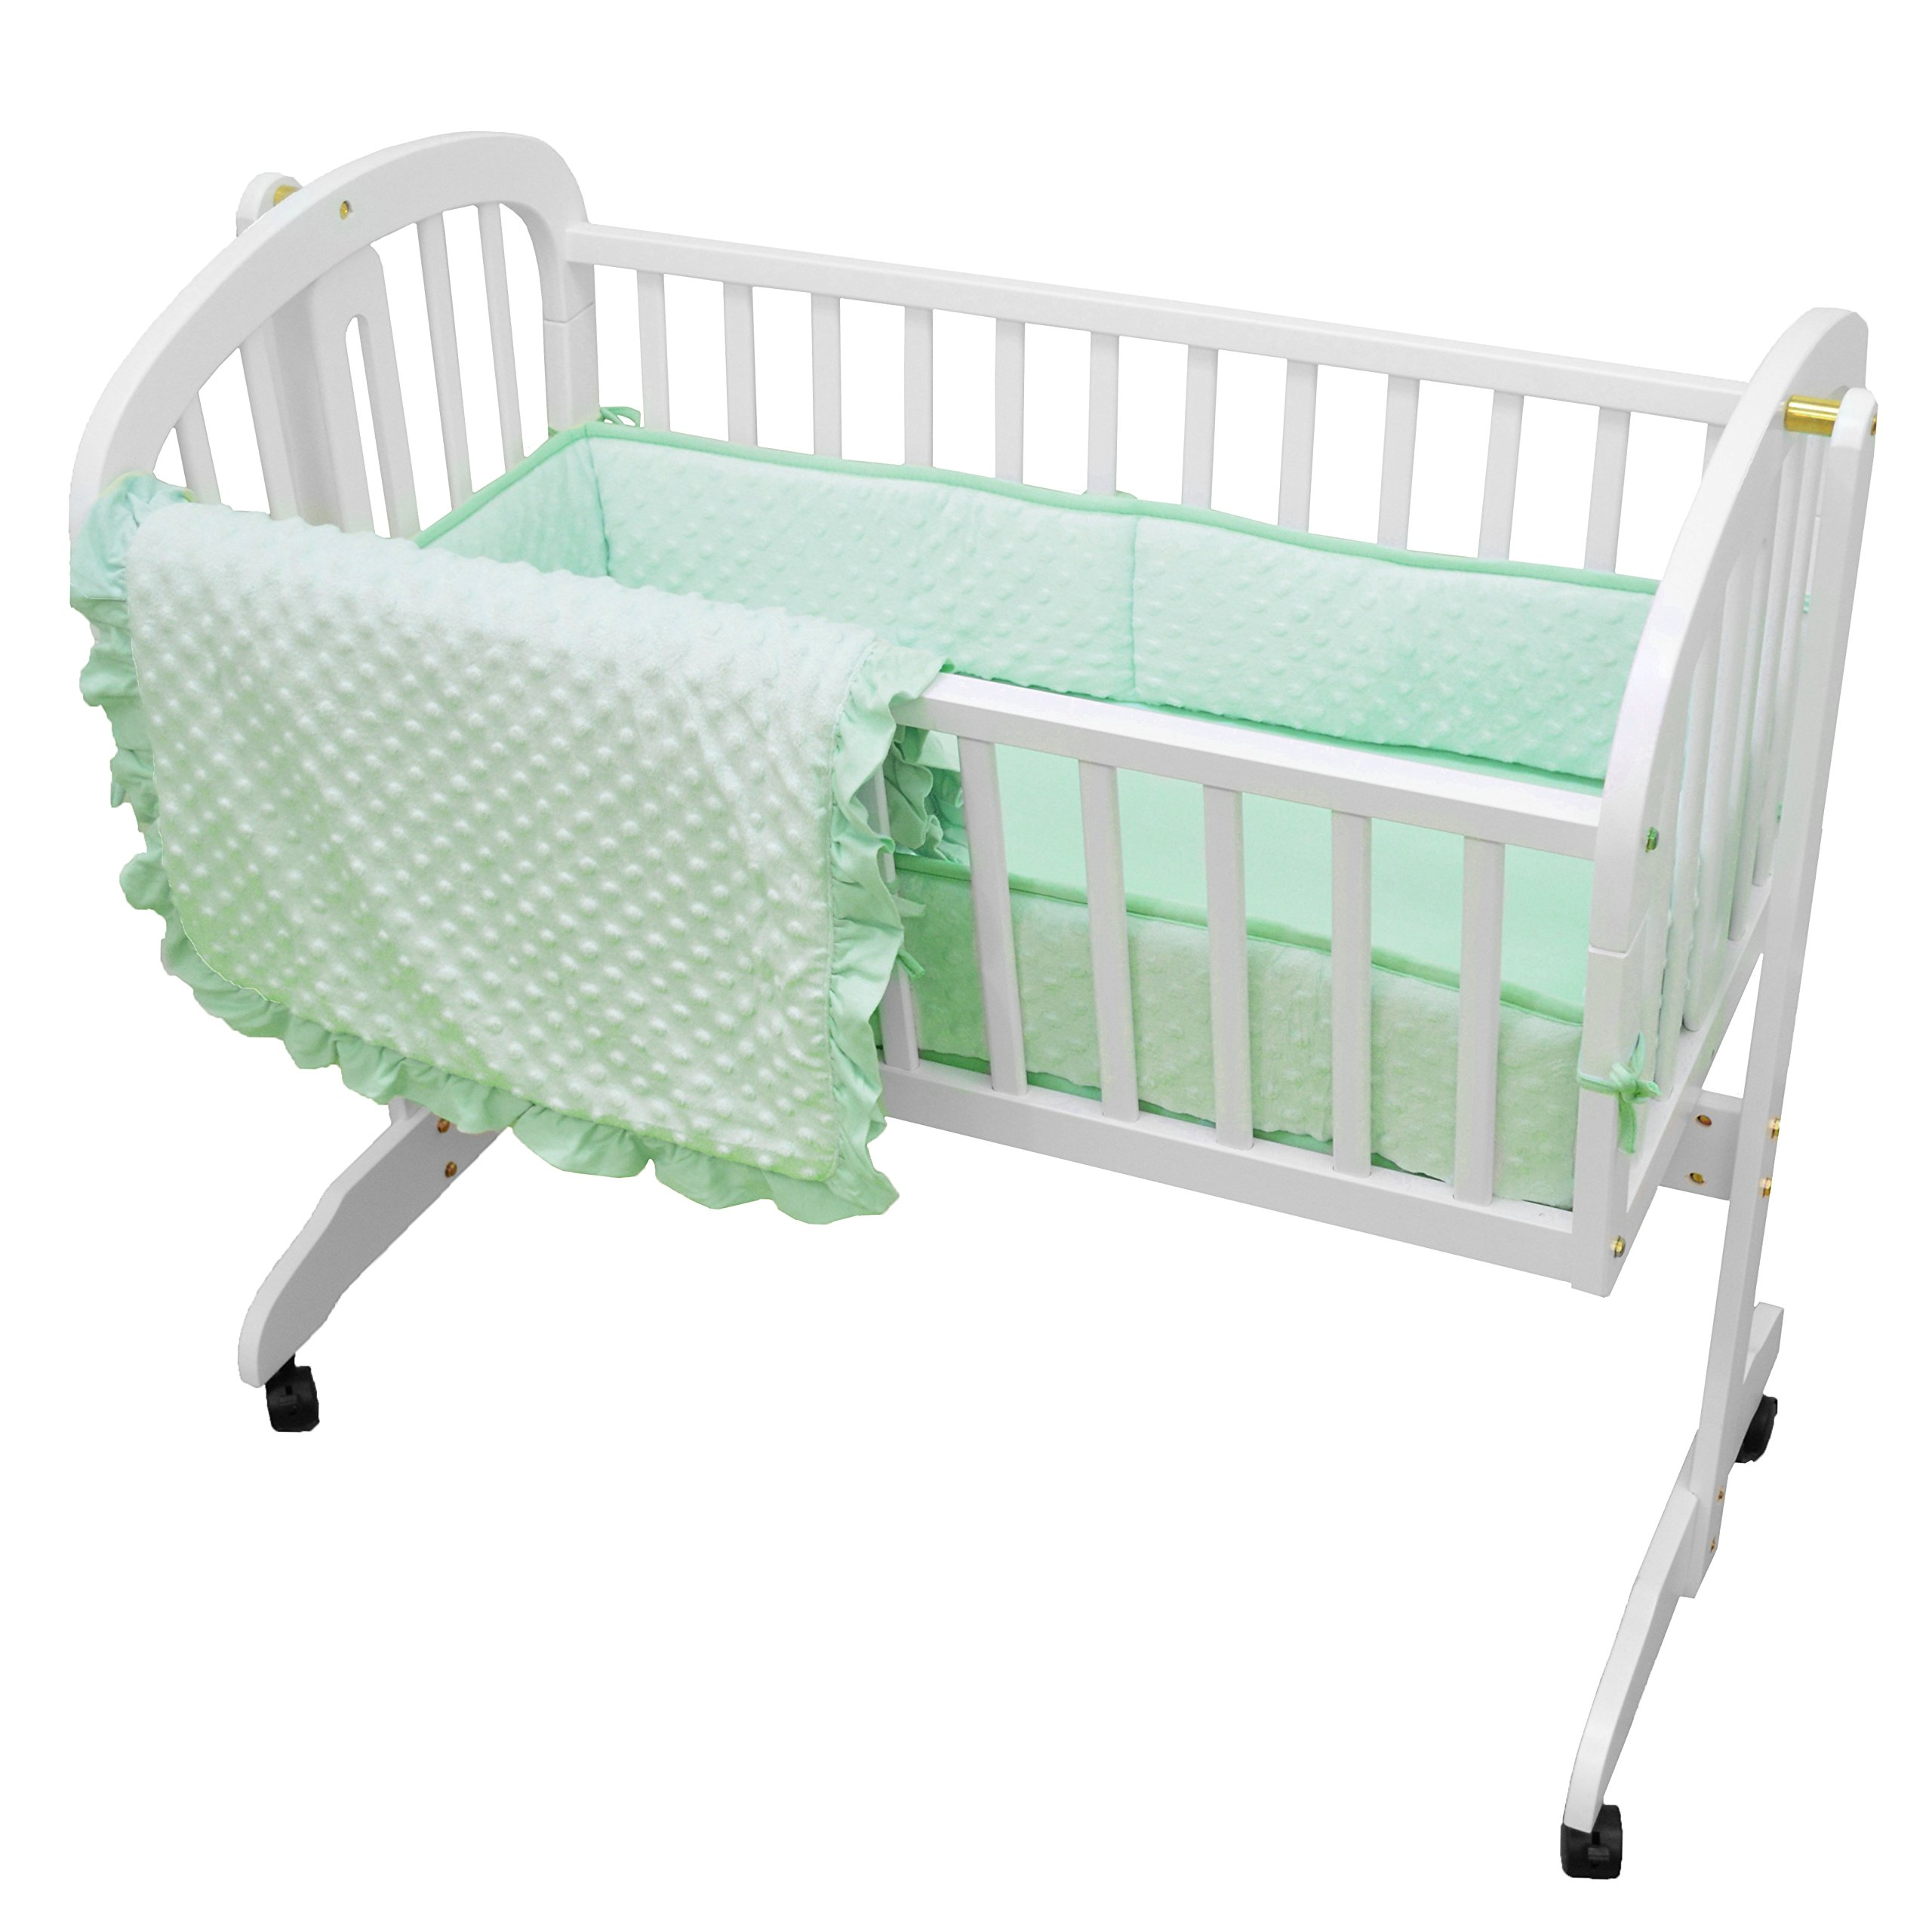 American Baby Company 3 Piece Heavenly Soft Cradle Bedding Set, Minky Dot, Mint by American Baby Company